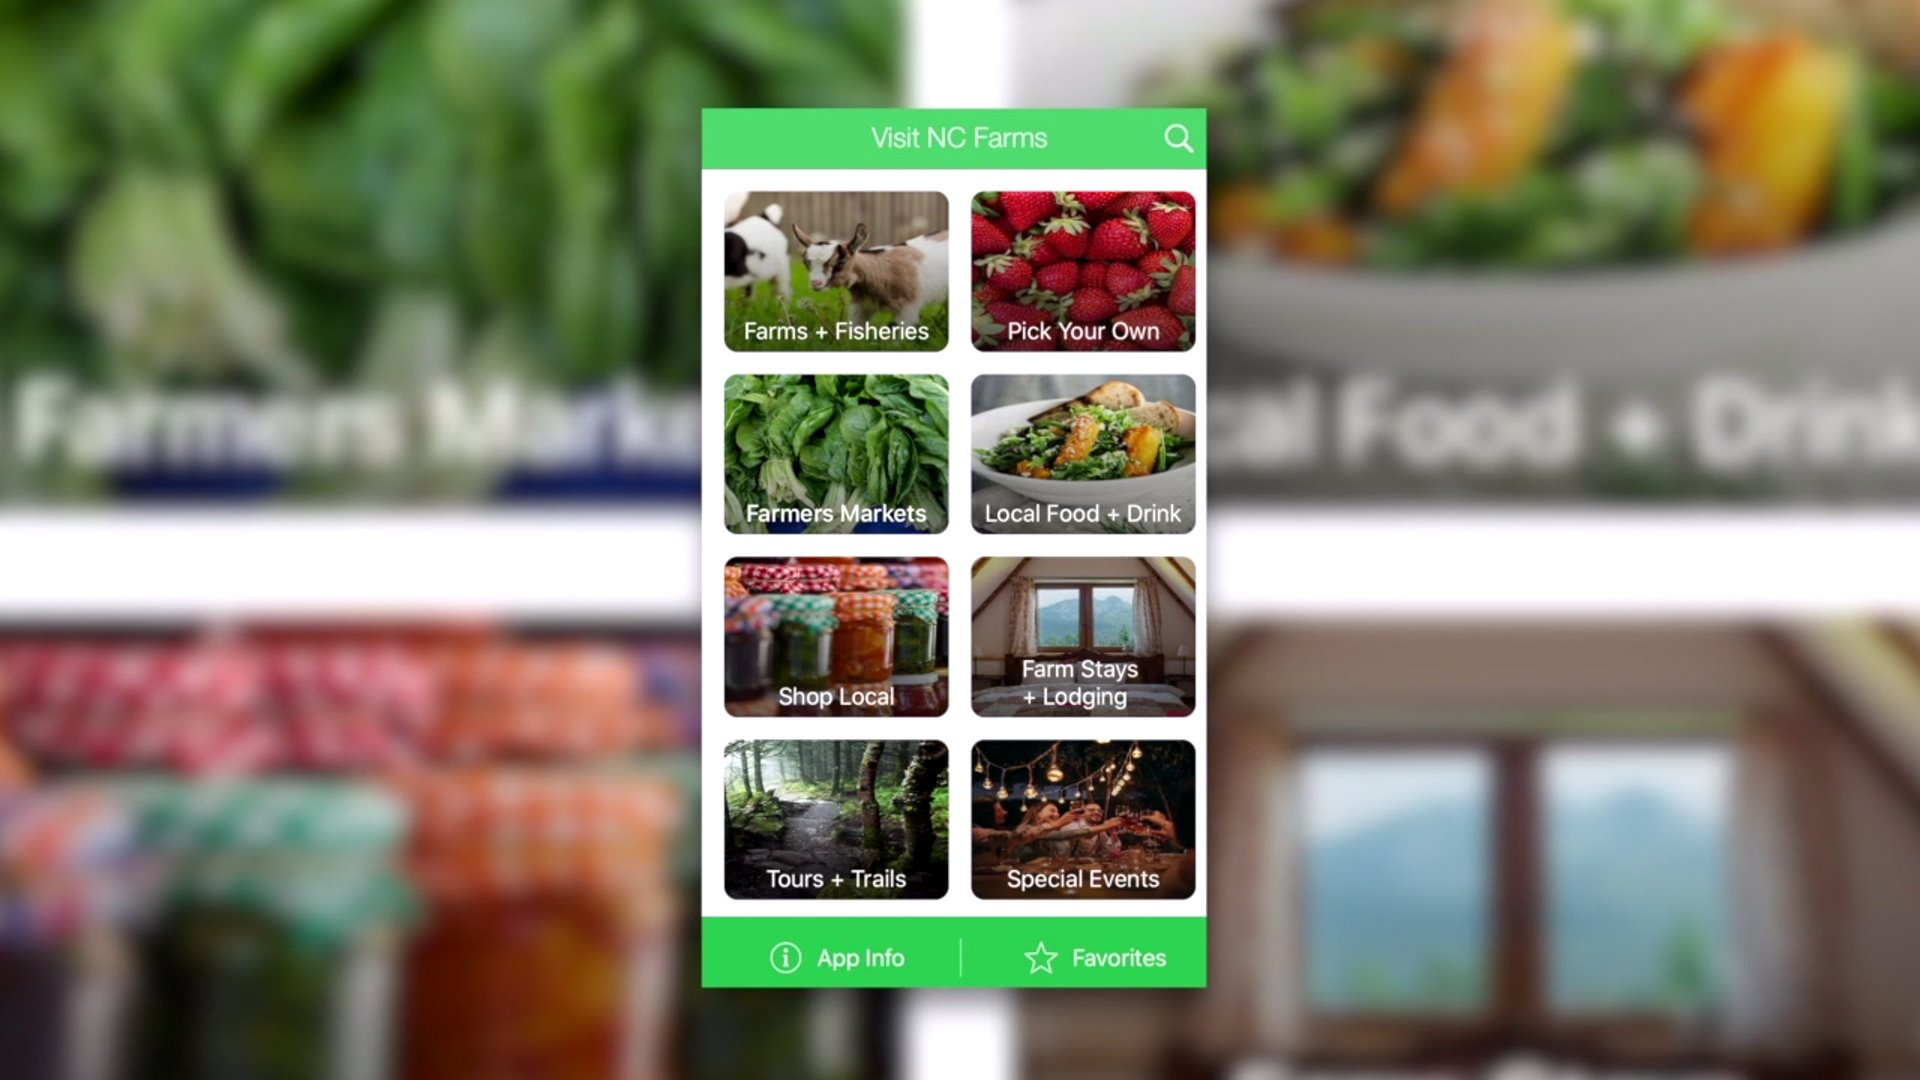 App bridging gap between NC farmers and consumers gaining popularity amid COVID-19 pandemic